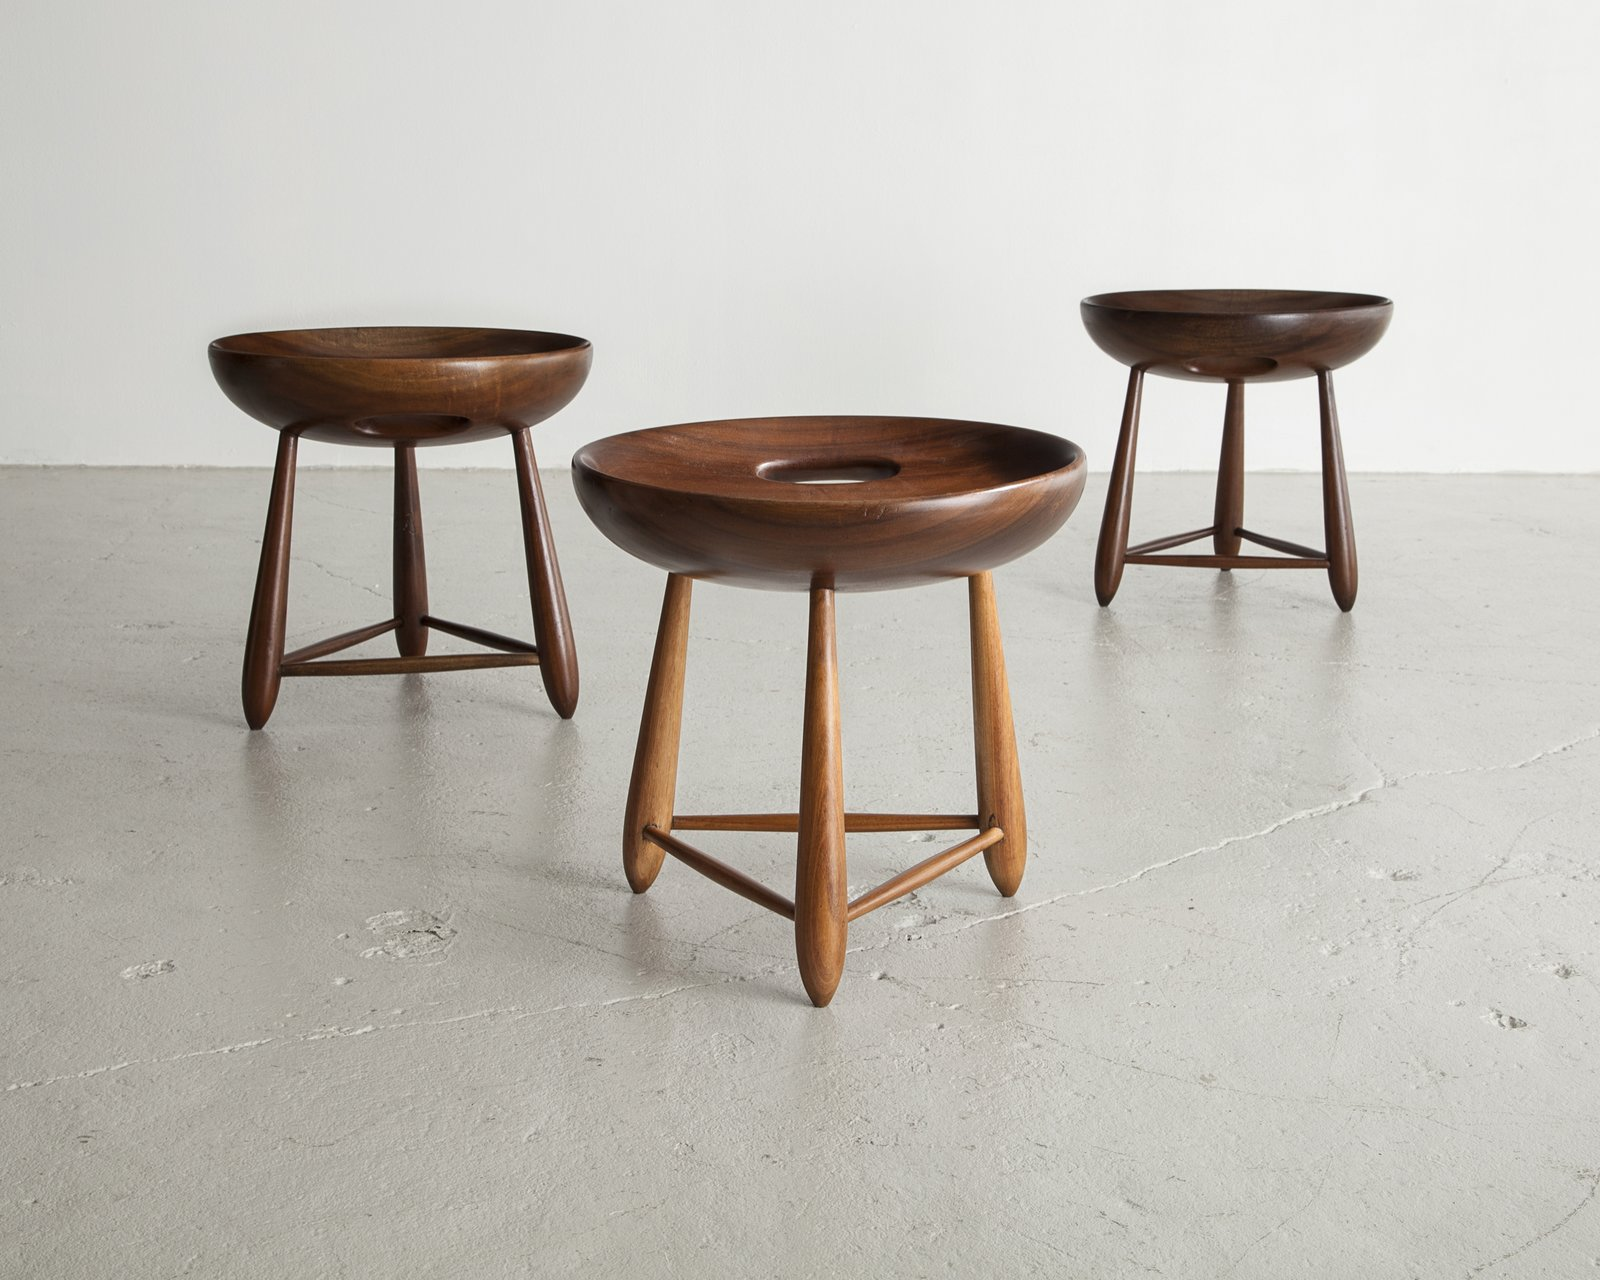 With signature materials like leather and wood, Sergio Rodrigues injected warmth and softness into his version of modernism. Here is a set of three-legged milking stools in Brazilian hardwood designed for Oca in 1954.  100+ Best Modern Seating Designs by Dwell from Bring the Best of Brazilian Modernism to Your Home with This New Book